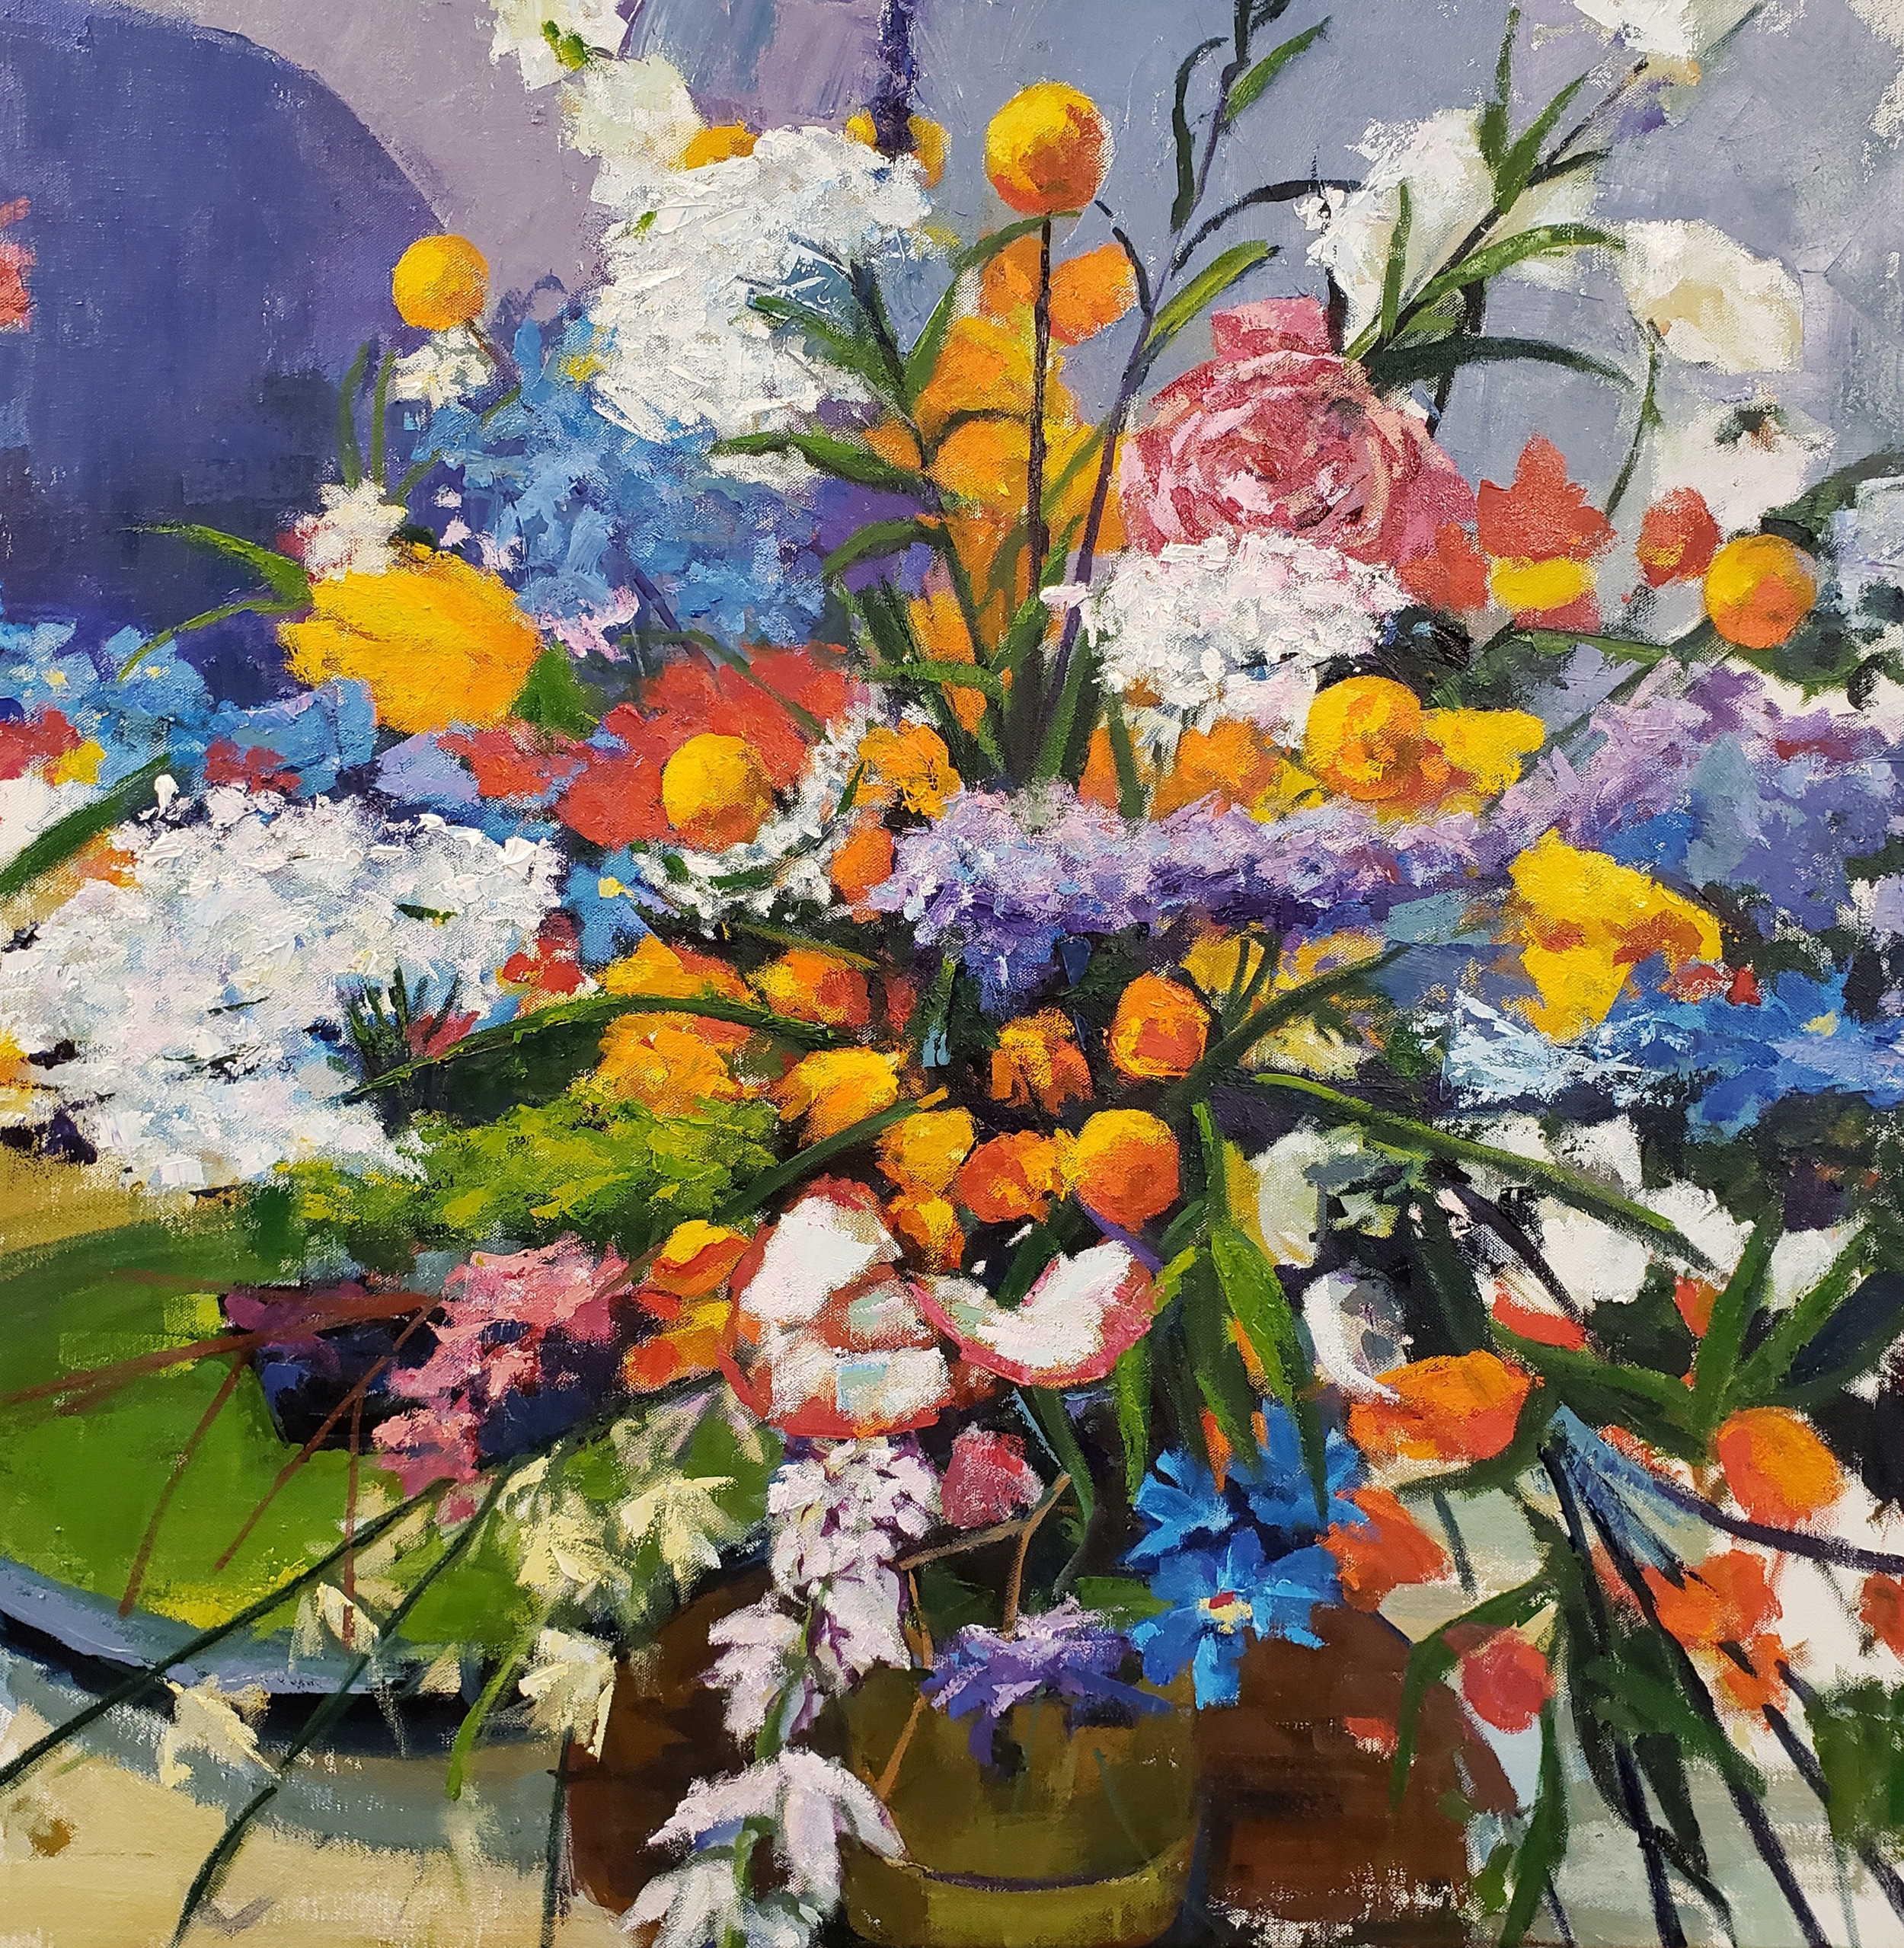 Still Life with Flowers  by Jenn Hallgren